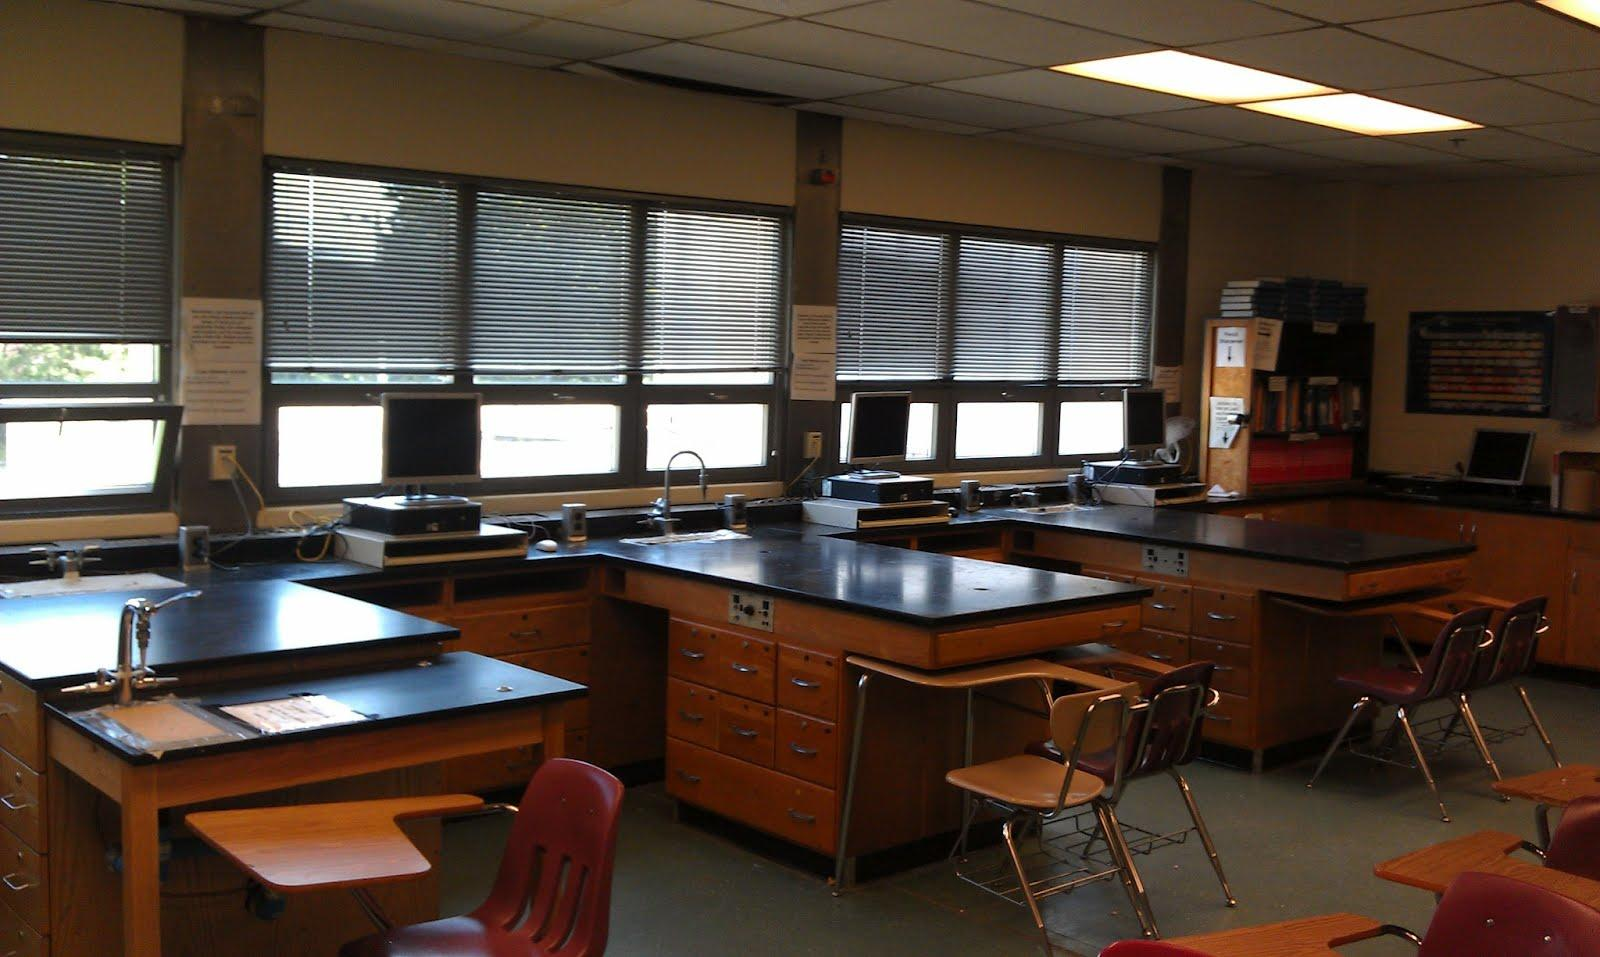 High School Physics Classroom Design : Classrooms of the world daily edventures